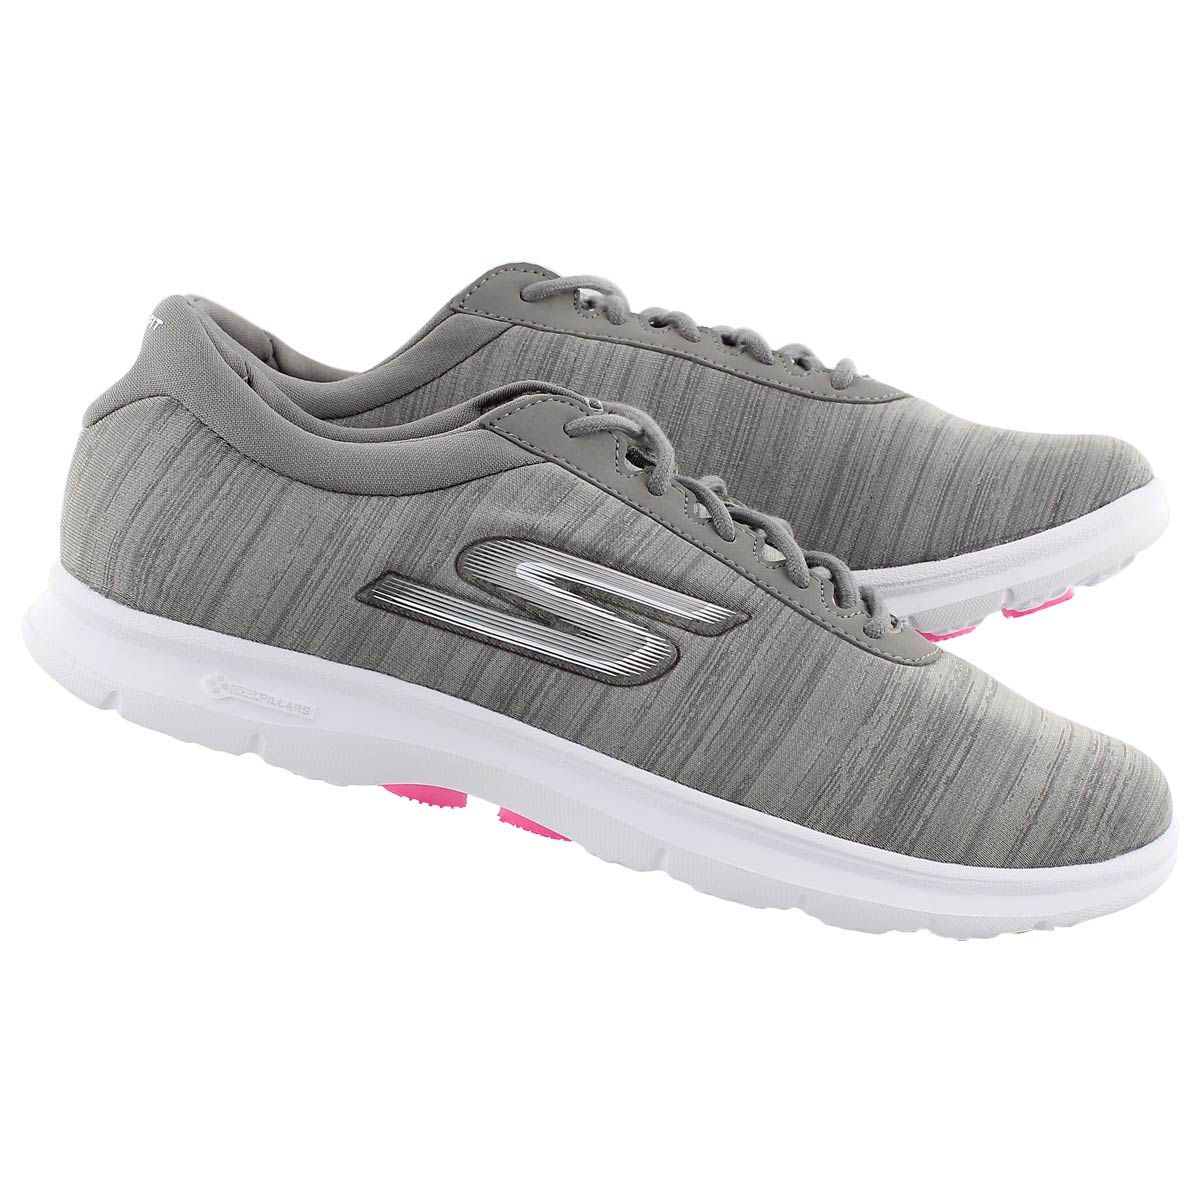 Lds GOstep Unmatched grey sneaker